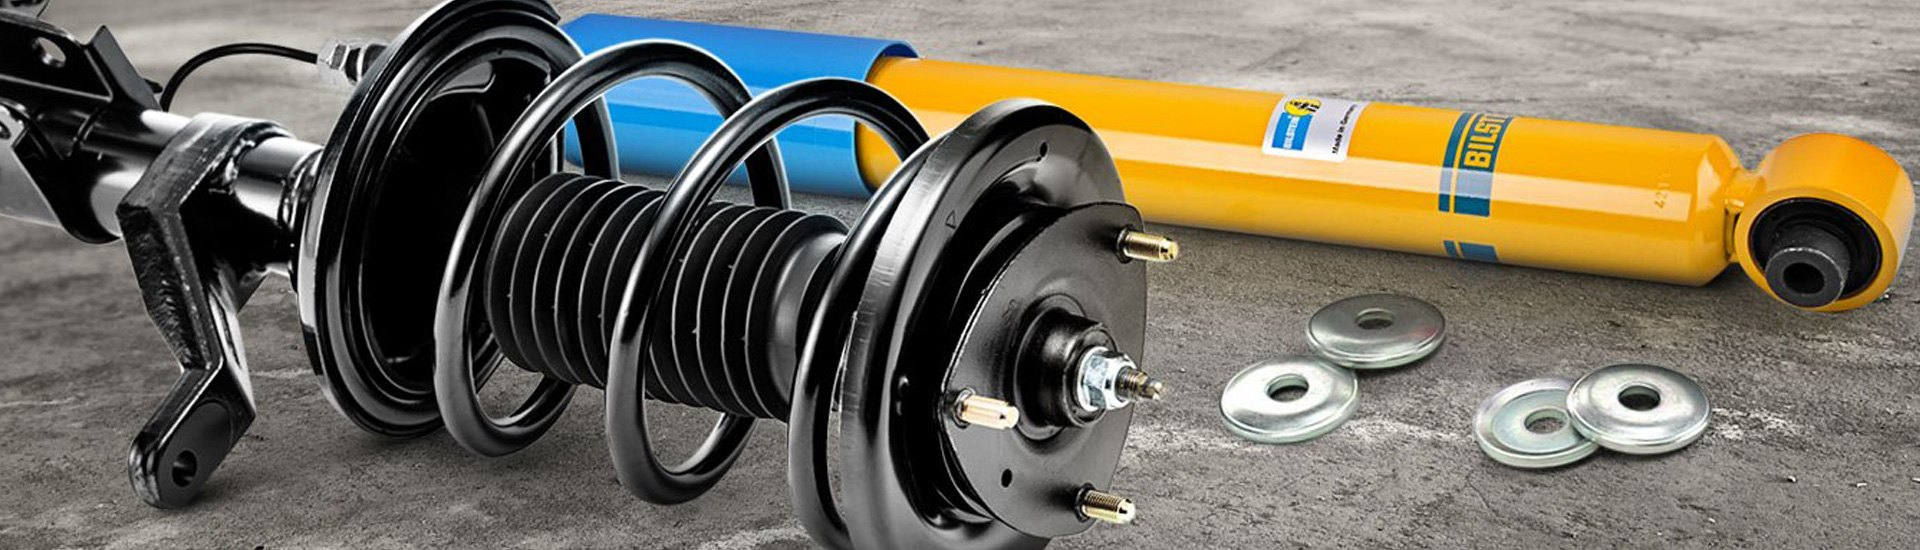 Replacement Twin Shock Absorbers